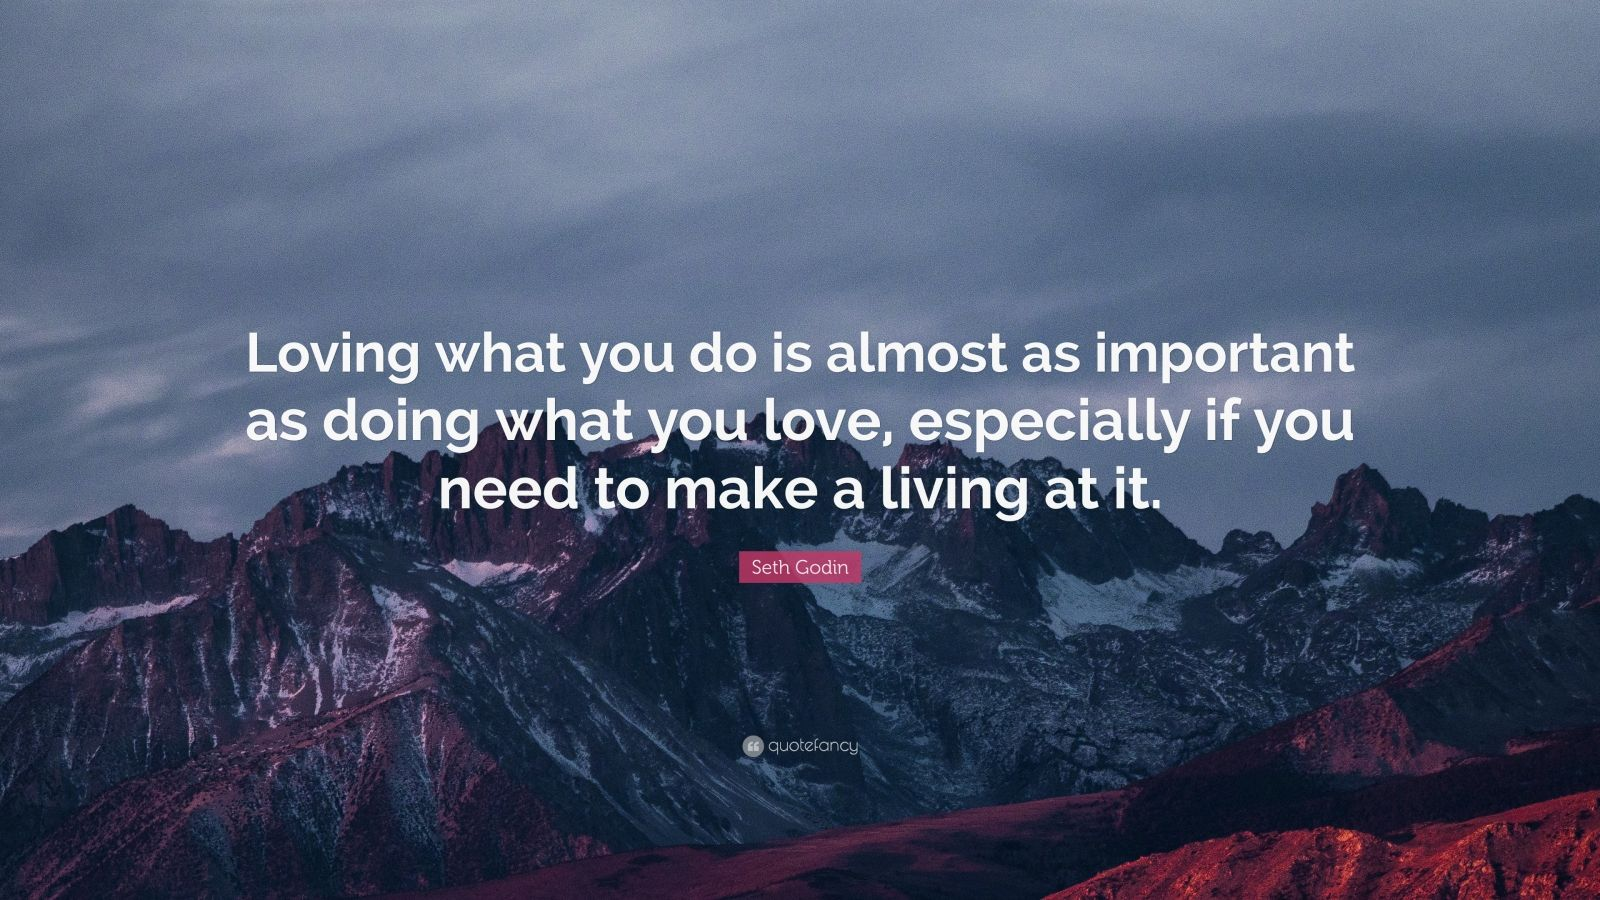 """Seth Godin Quote: """"Loving what you do is almost as important as doing what you love, especially if you need to make a living at it."""""""